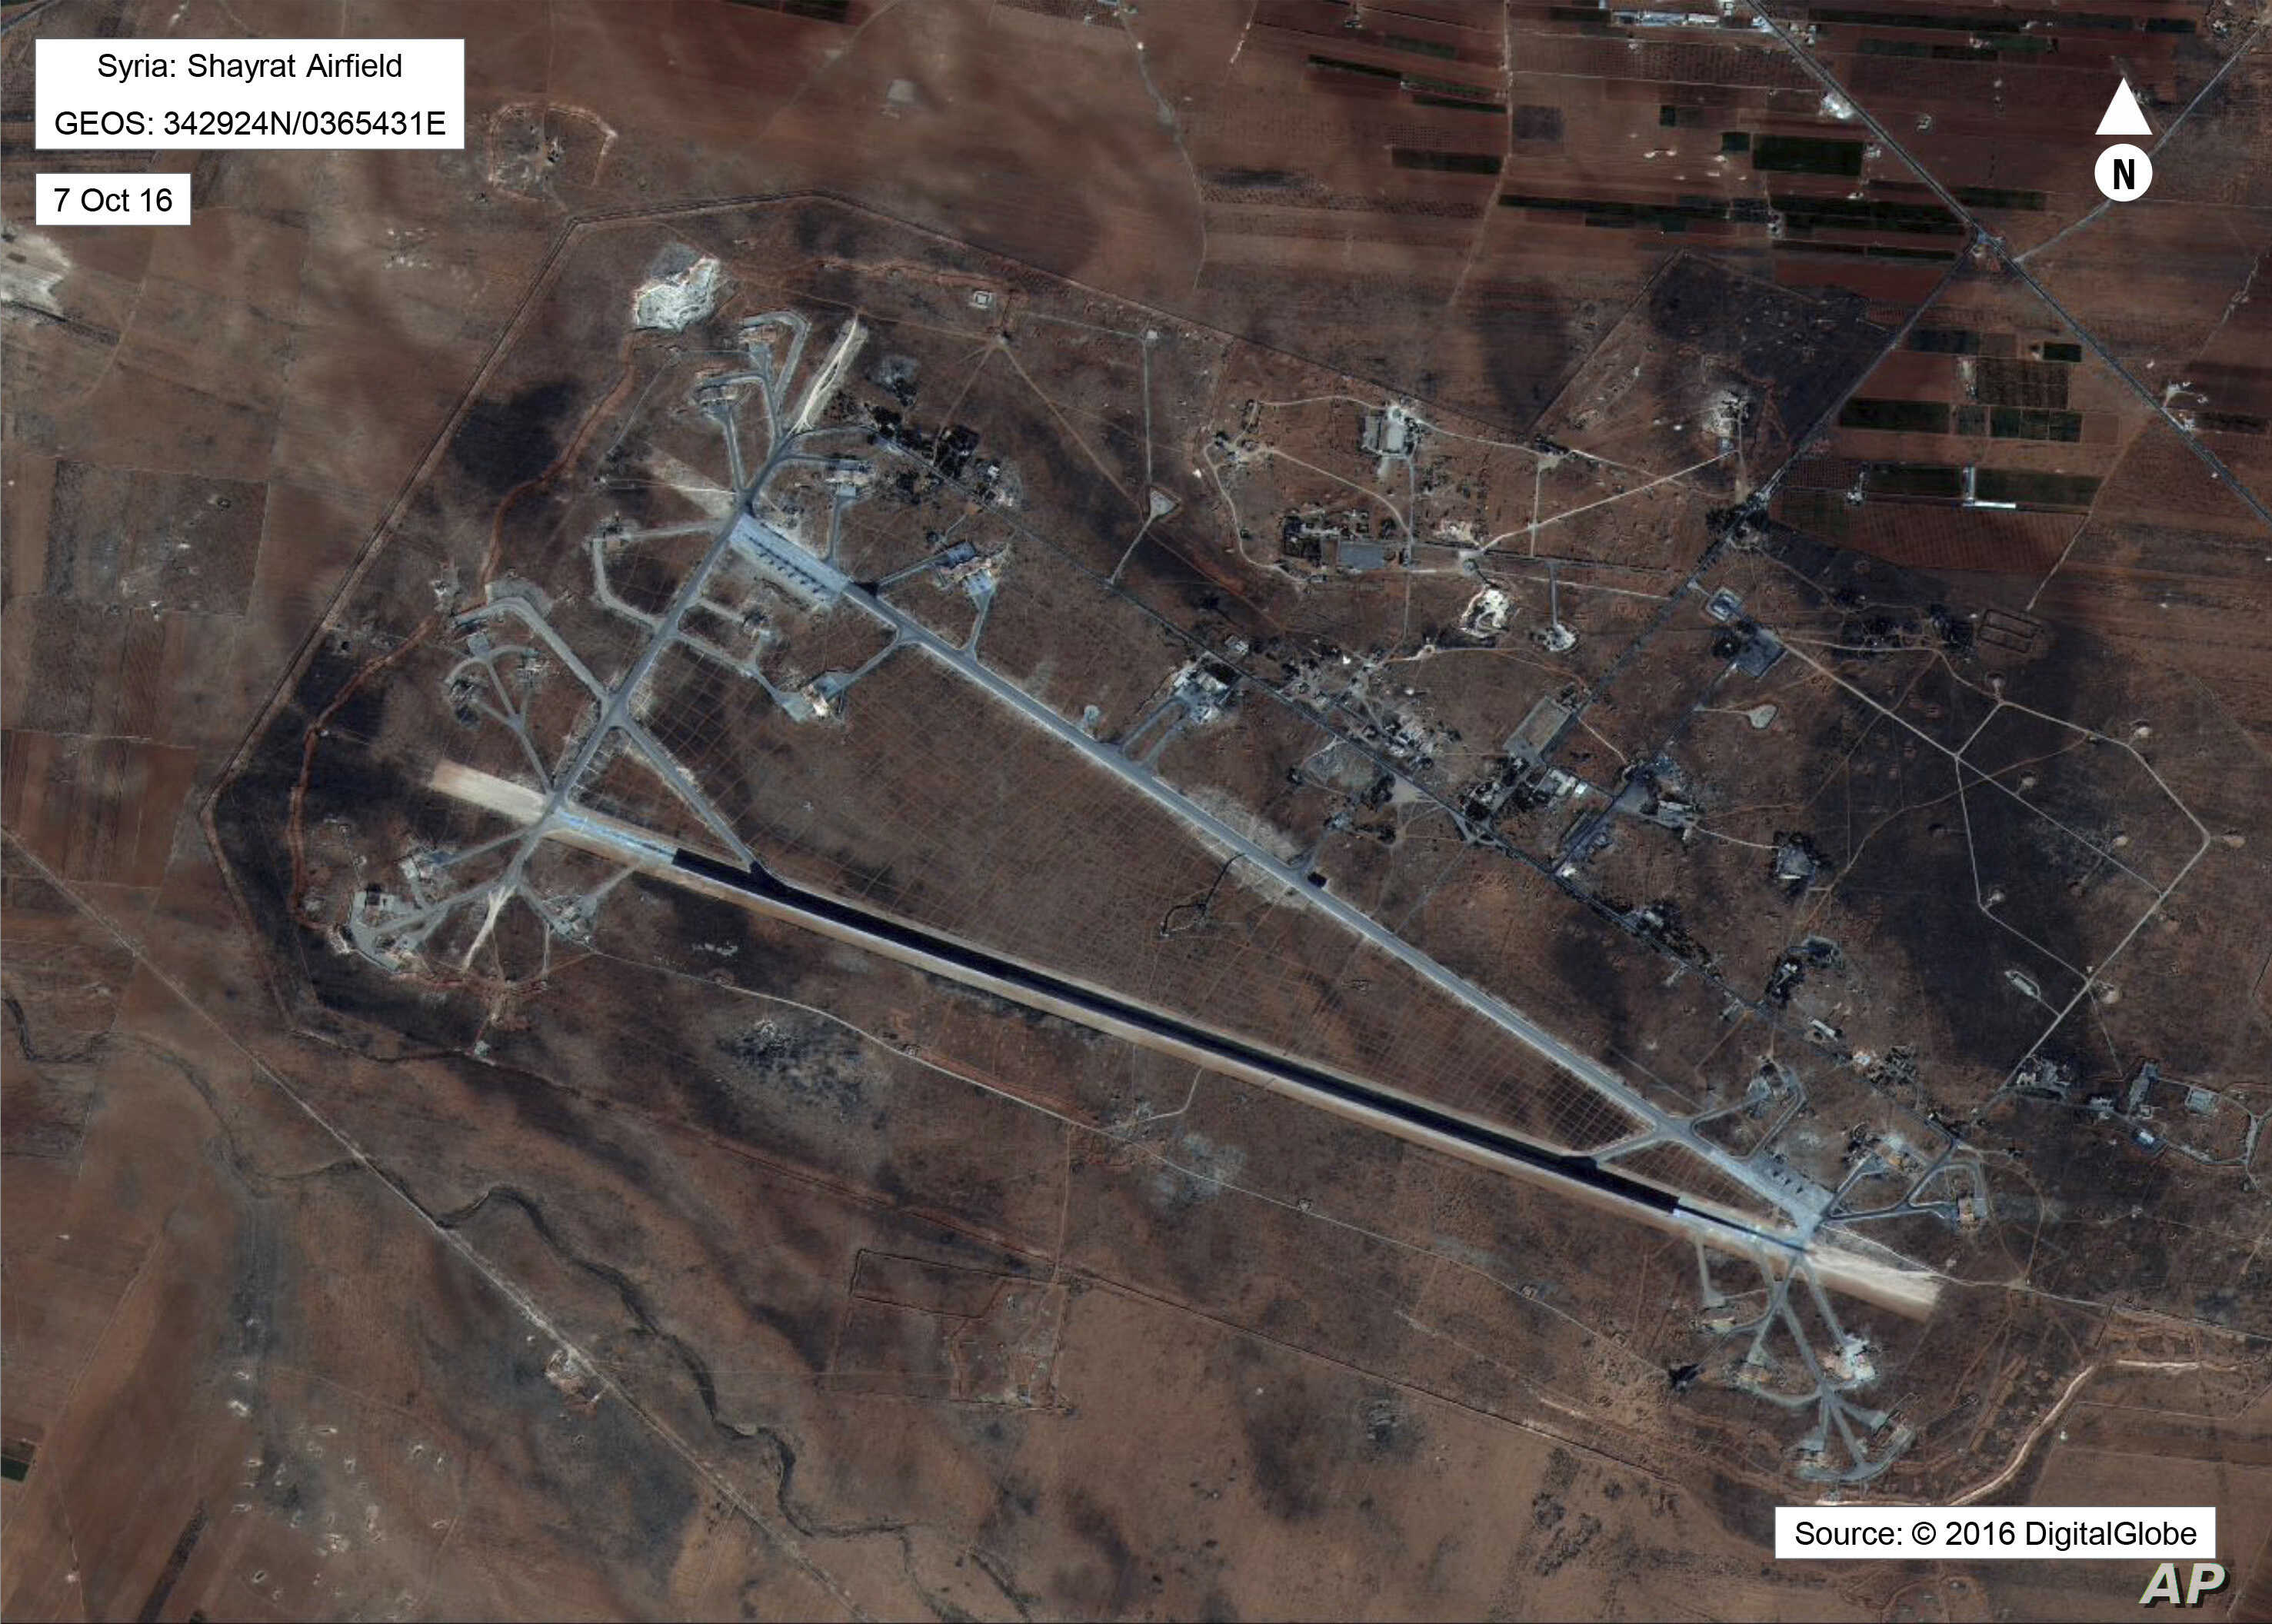 This Oct. 7, 2016 satellite image released by the U.S. Department of Defense shows Shayrat air base in Syria. The U.S. blasted a Syrian air base with a barrage of cruise missiles on April 7, 2017 in fiery retaliation for this week's gruesome chemical...